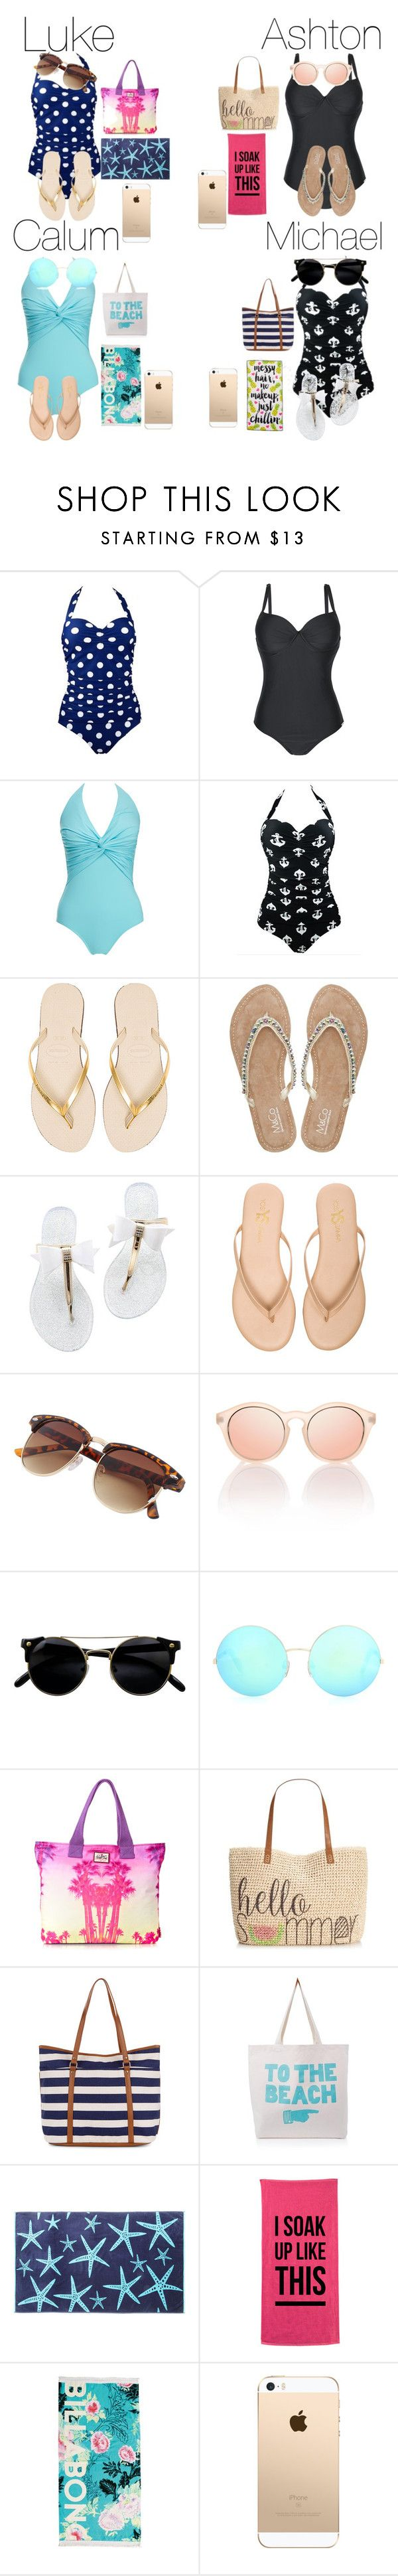 """Beach outfit w 5sos"" by sophiestarxx ❤ liked on Polyvore featuring Melissa Odabash, Havaianas, M&Co, Yosi Samra, Victoria Beckham, Superdry, Style & Co., Accessorize, ALPHABET BAGS and Billabong"